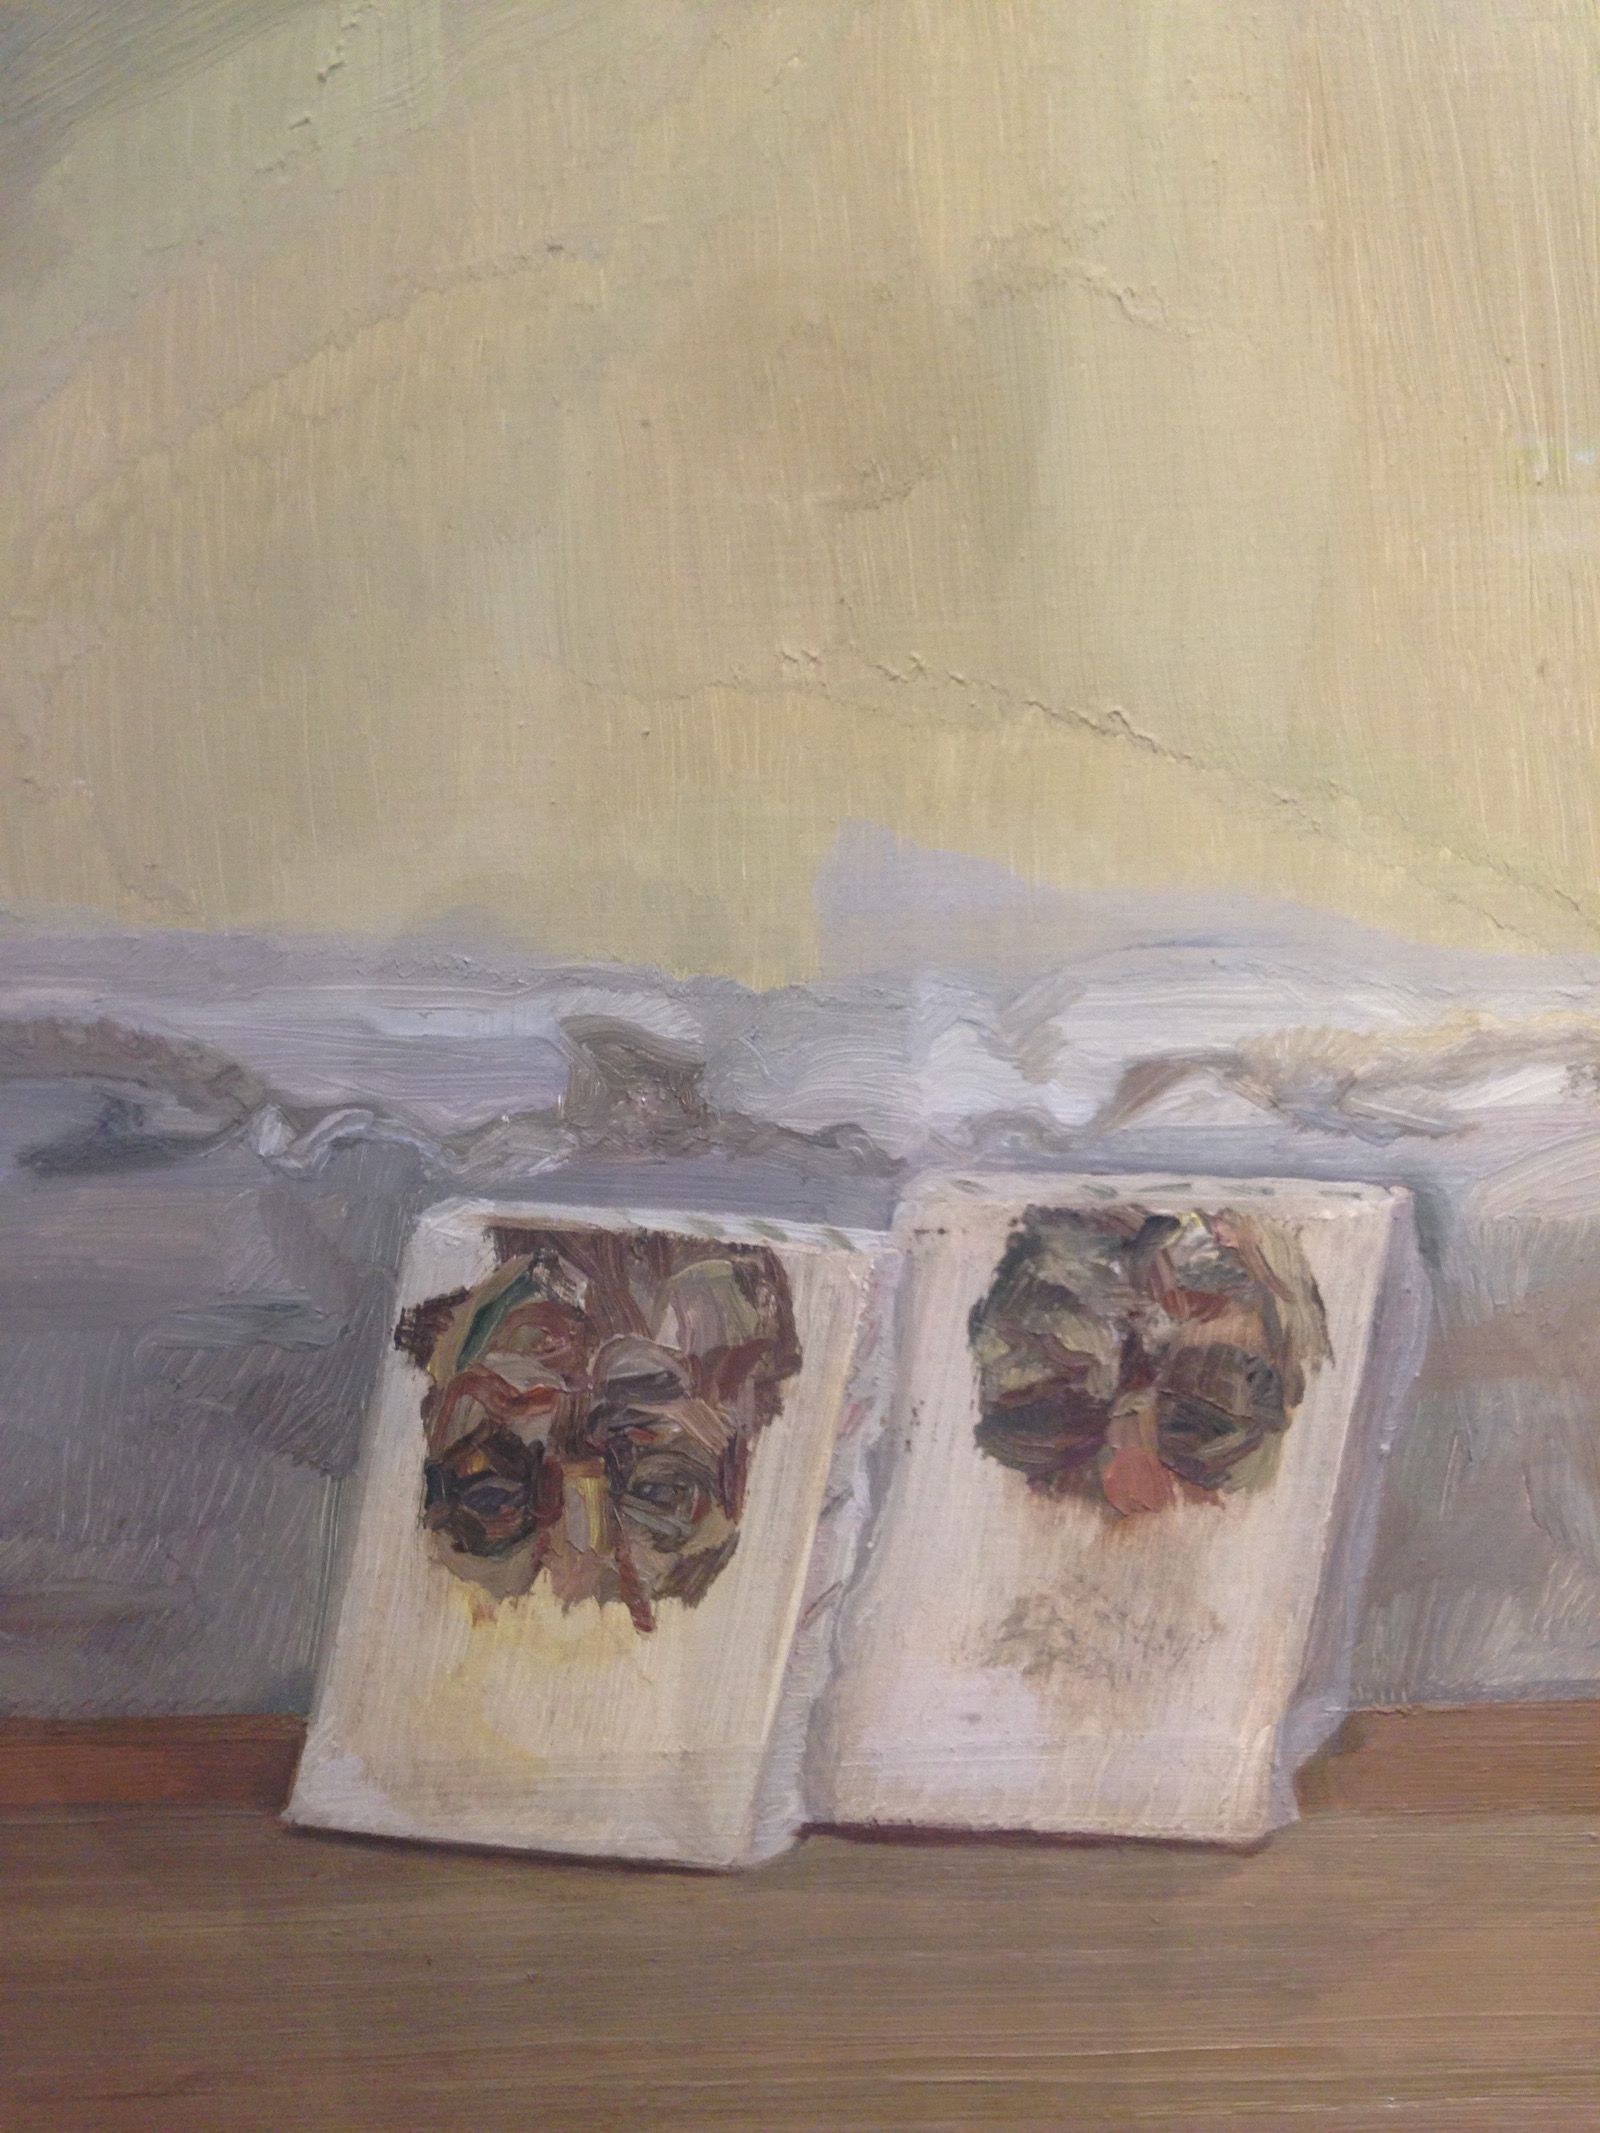 Detail image from Two Irishmen in W11, Oil on canvas, 172.7 x 141.6cm, 1984-85, Private Collection